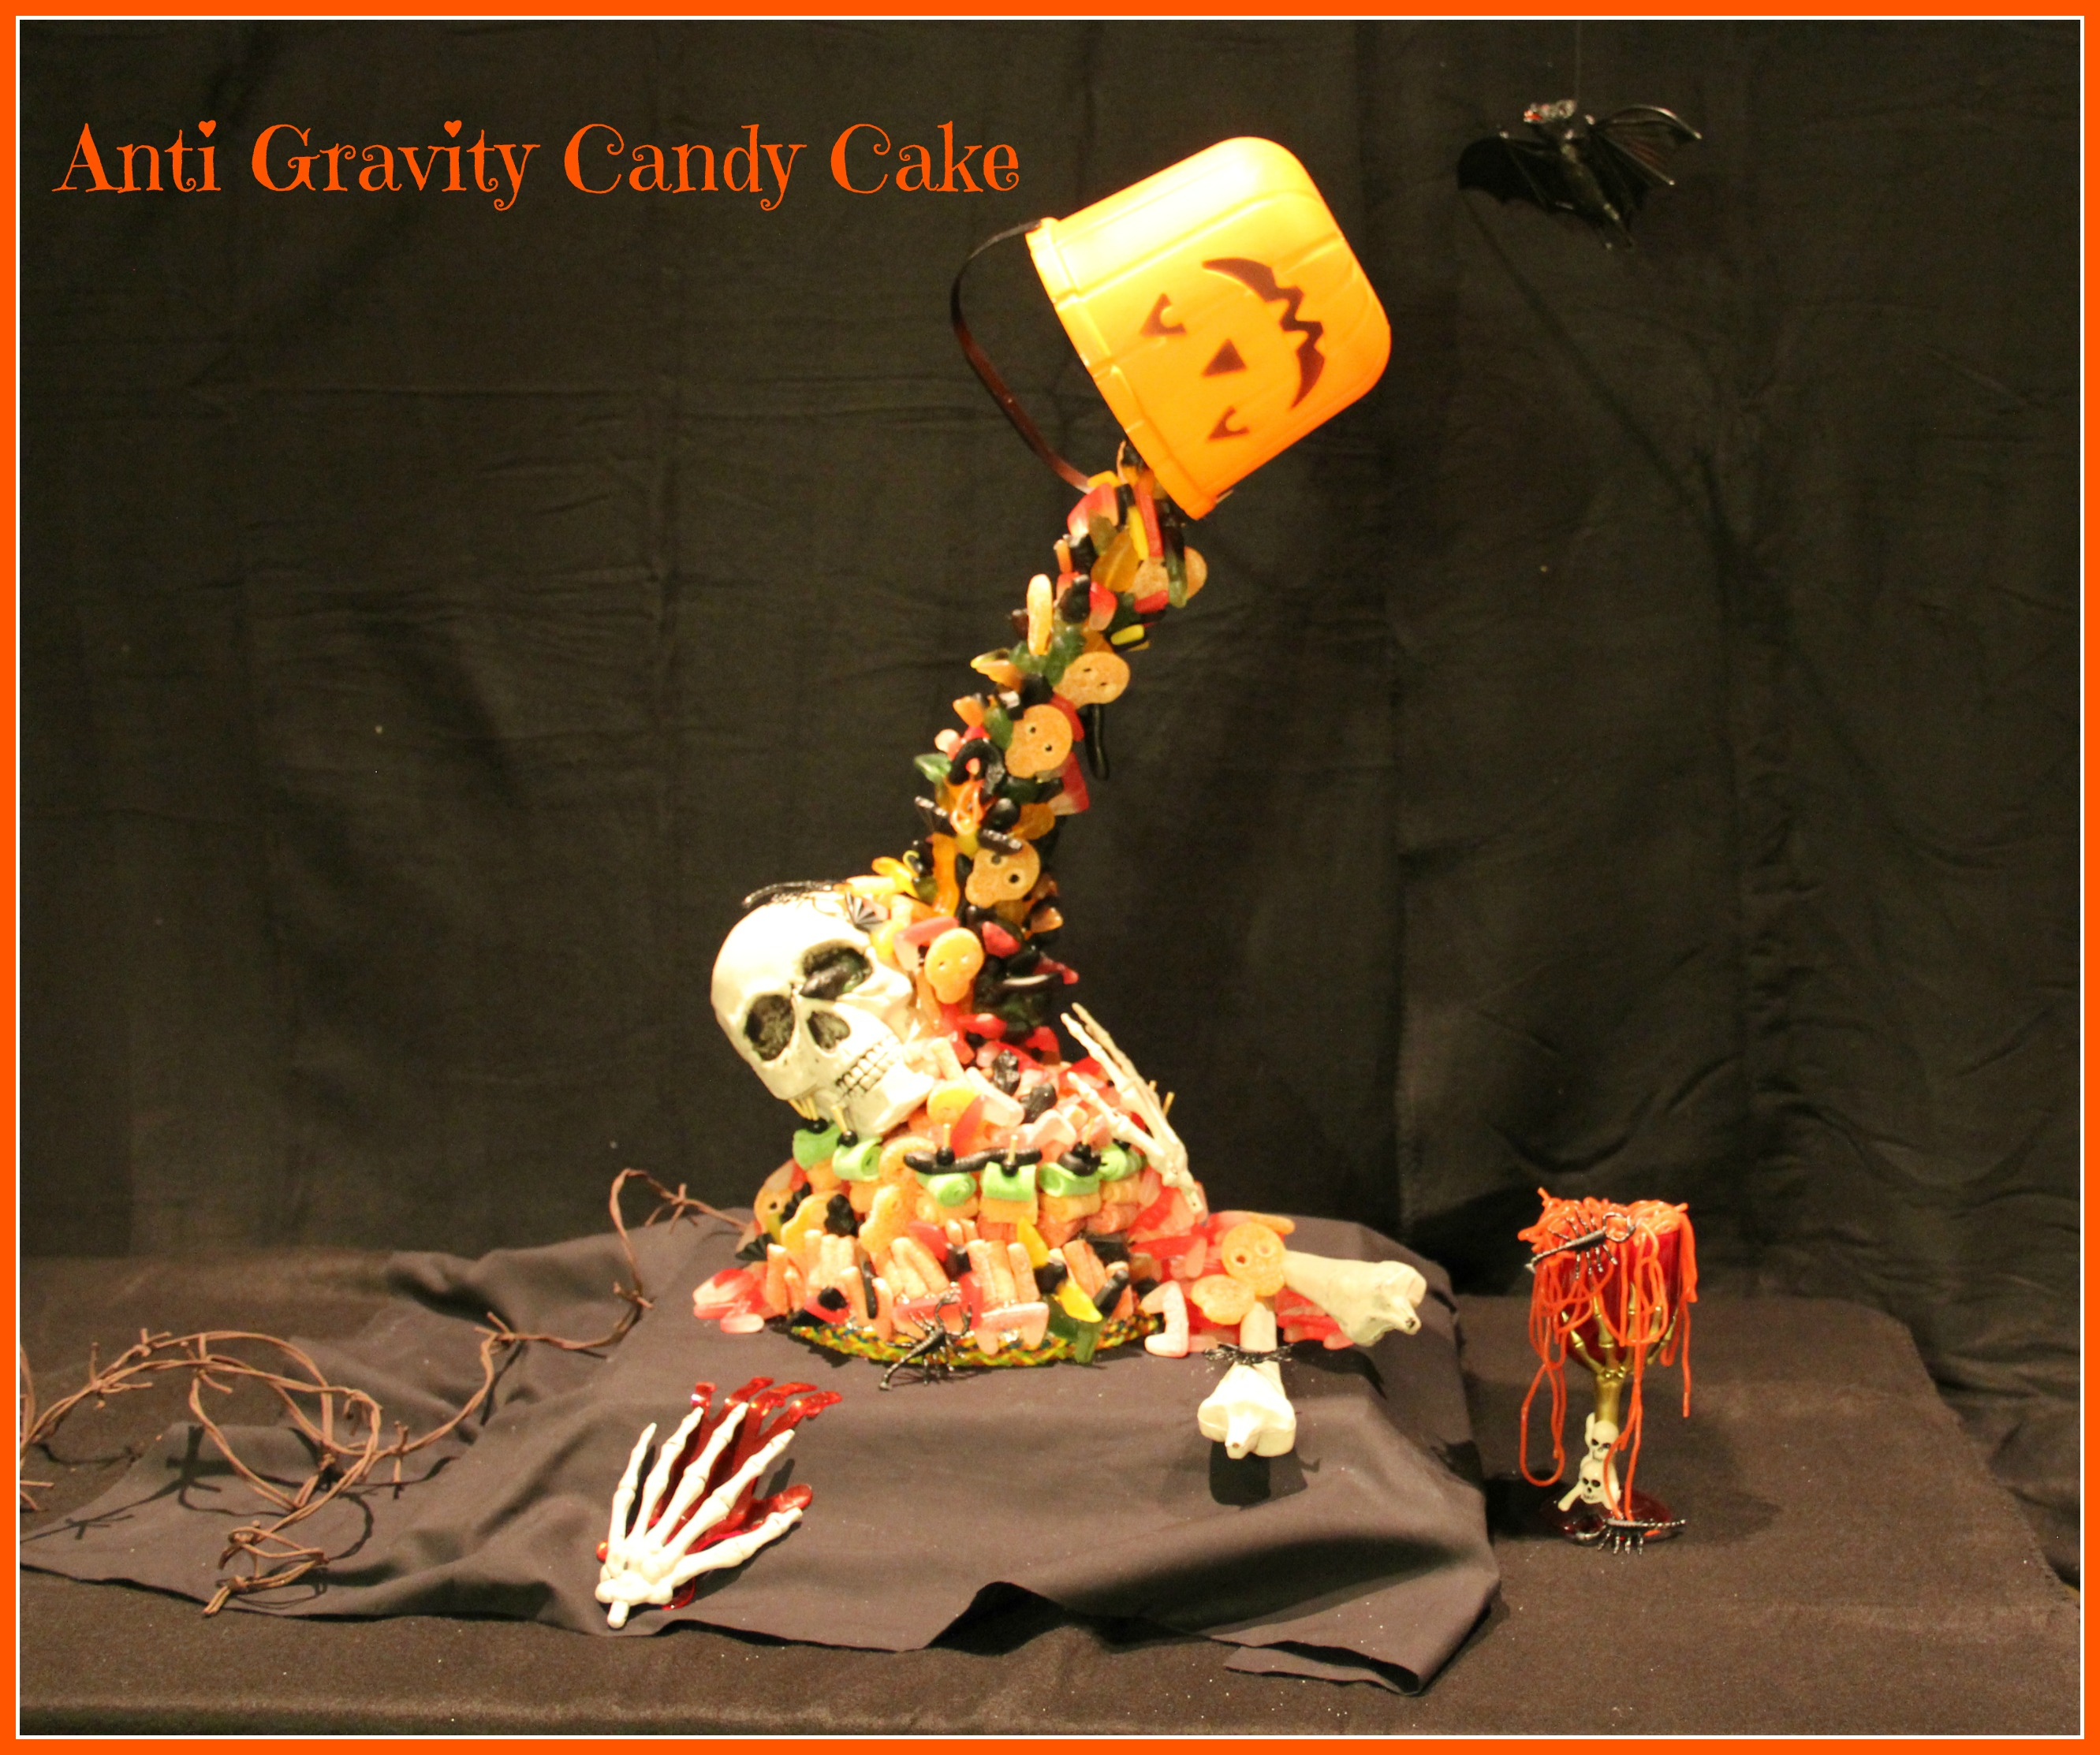 mariecadie-com-anti-gravity-candy-cake_4